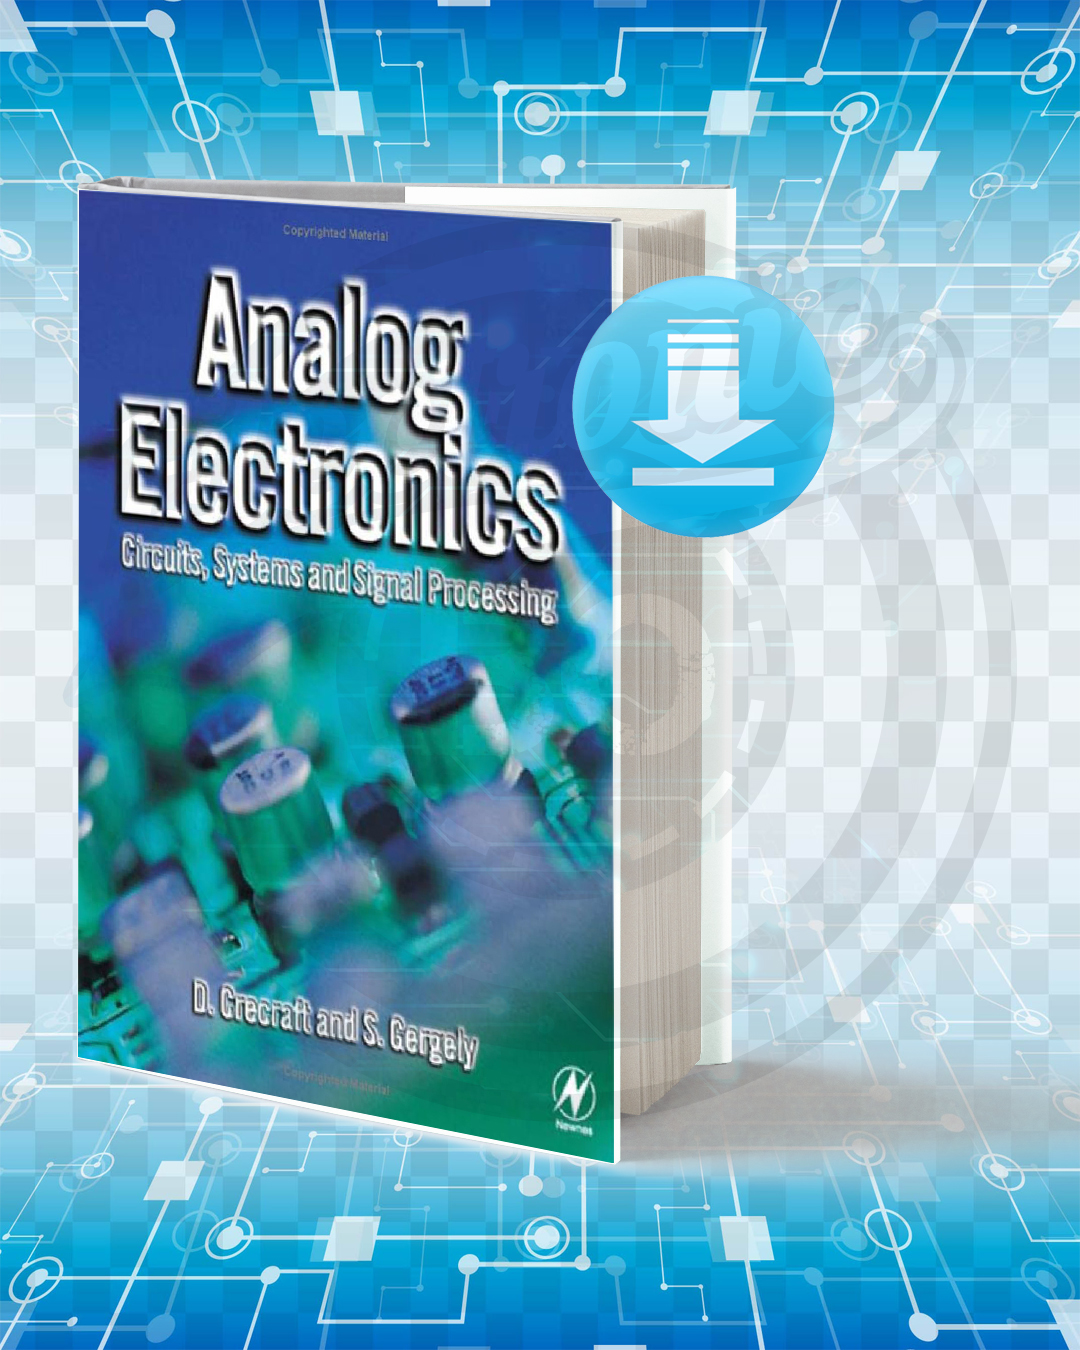 Free Book Analog Electronics pdf.